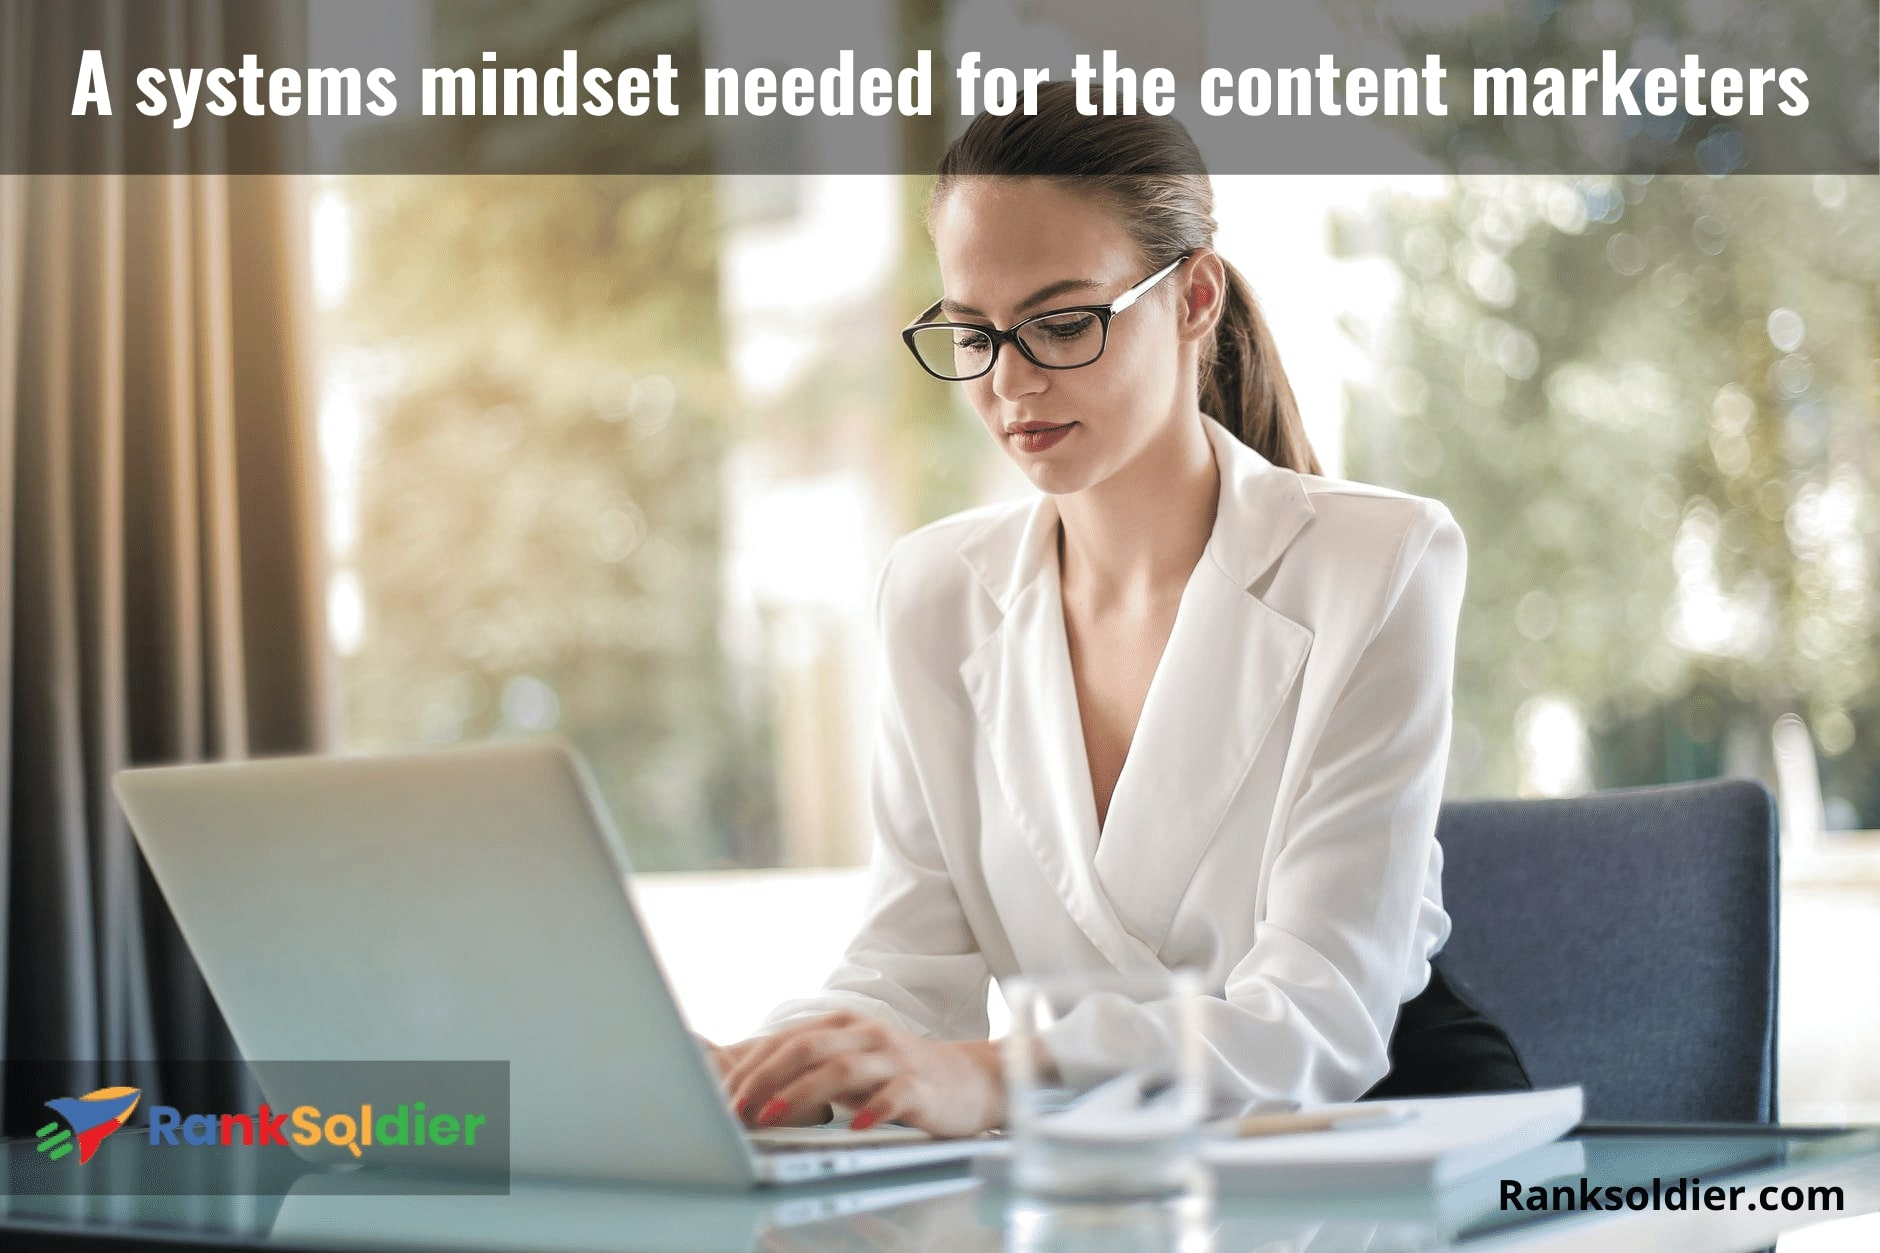 A systems mindset needed for the content marketers